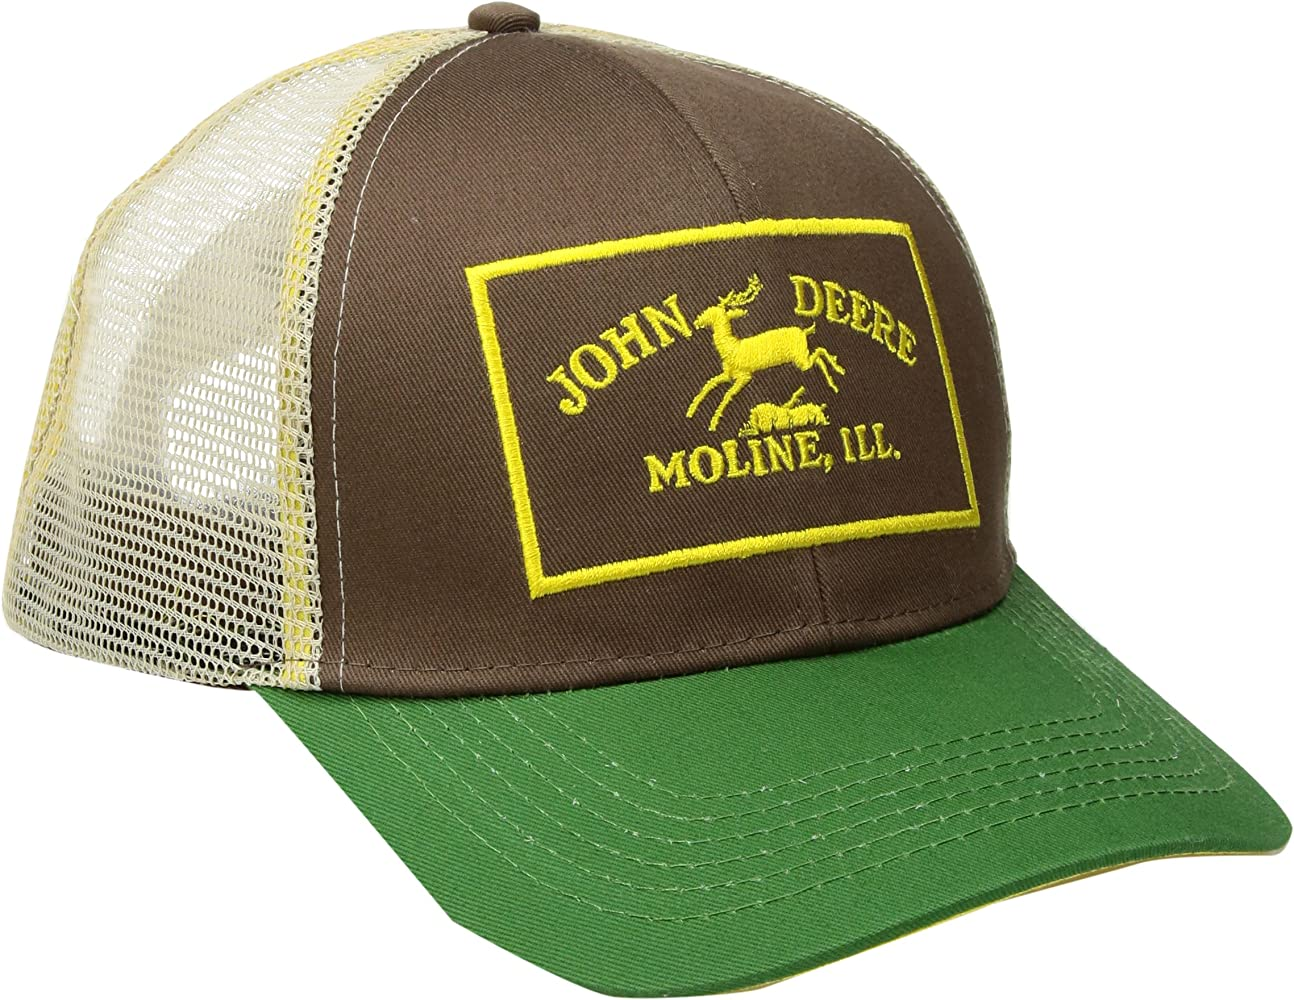 John Deere Mens Twill and Mesh Cap Embroidery: Amazon.es: Ropa y ...